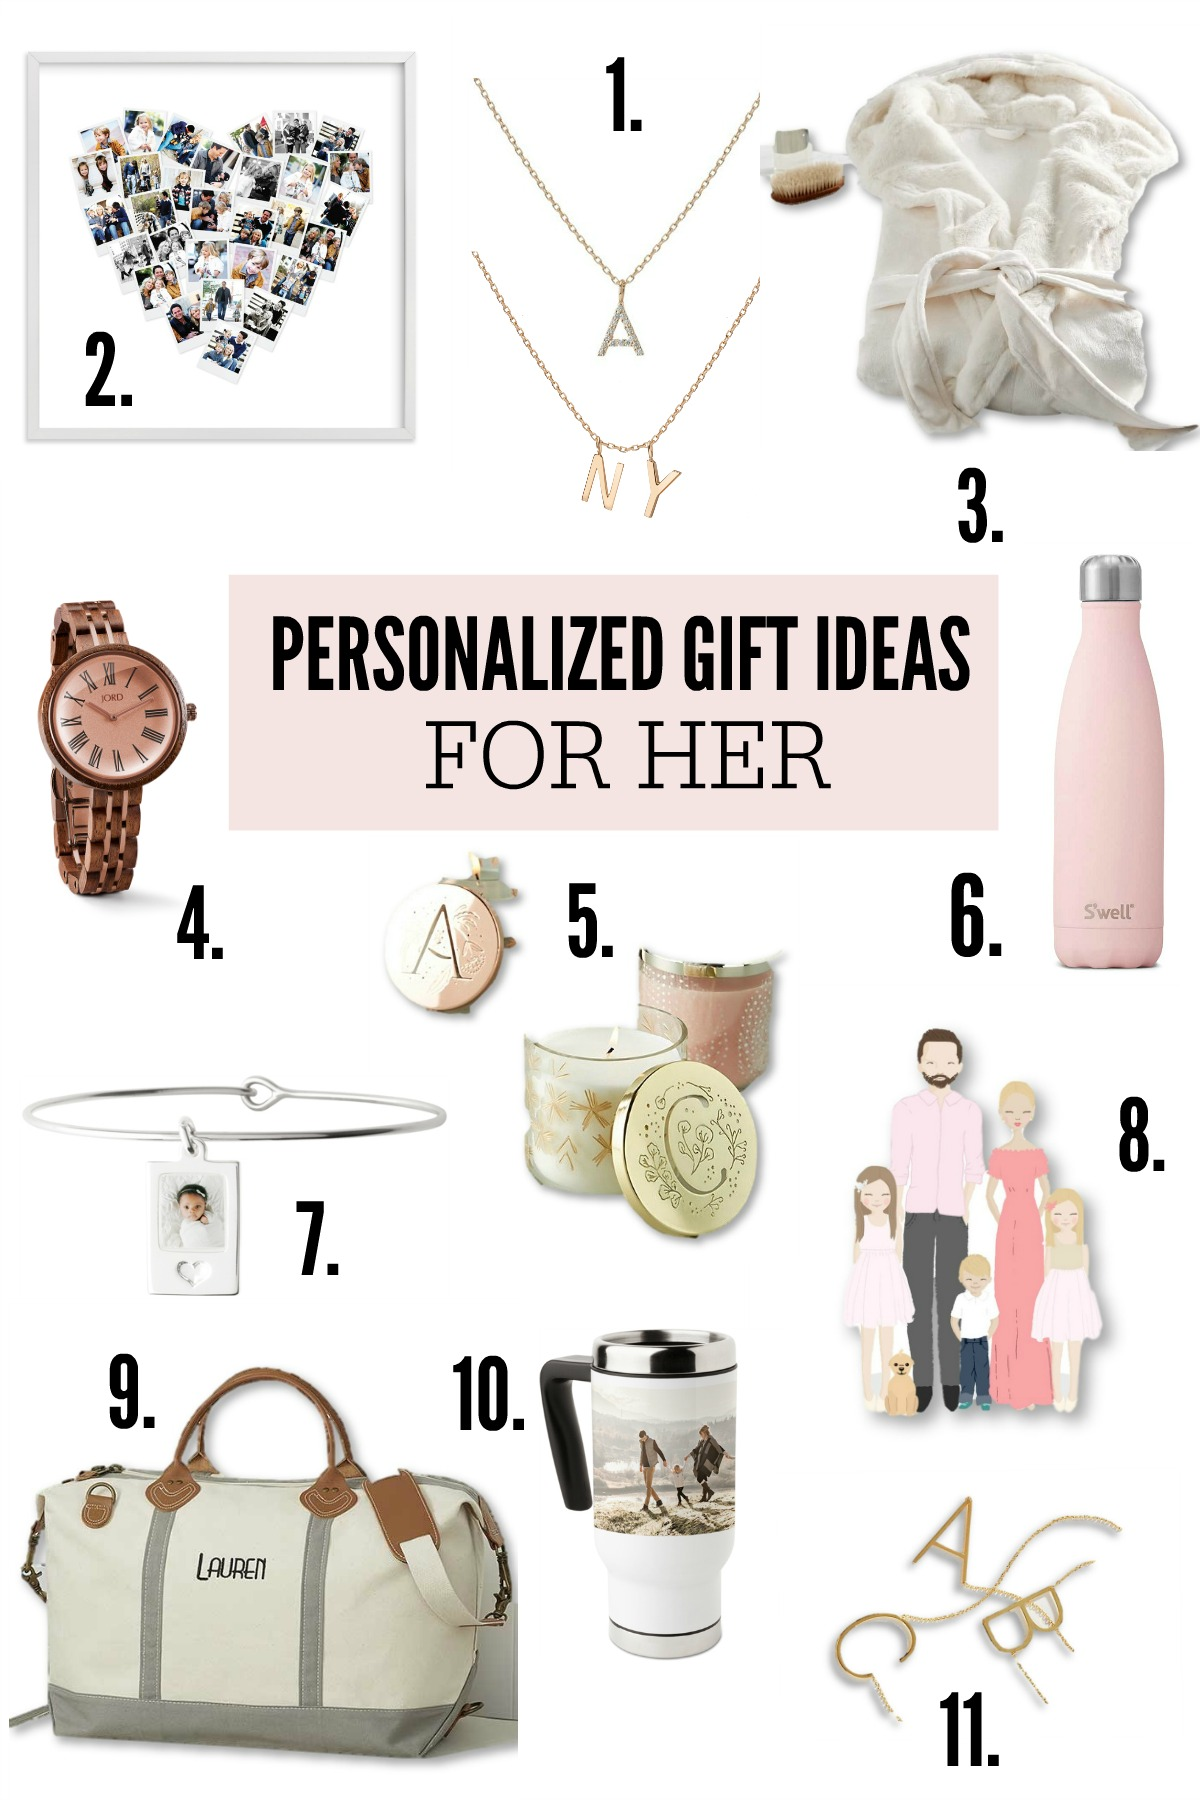 Collection of personalized gift ideas for her.